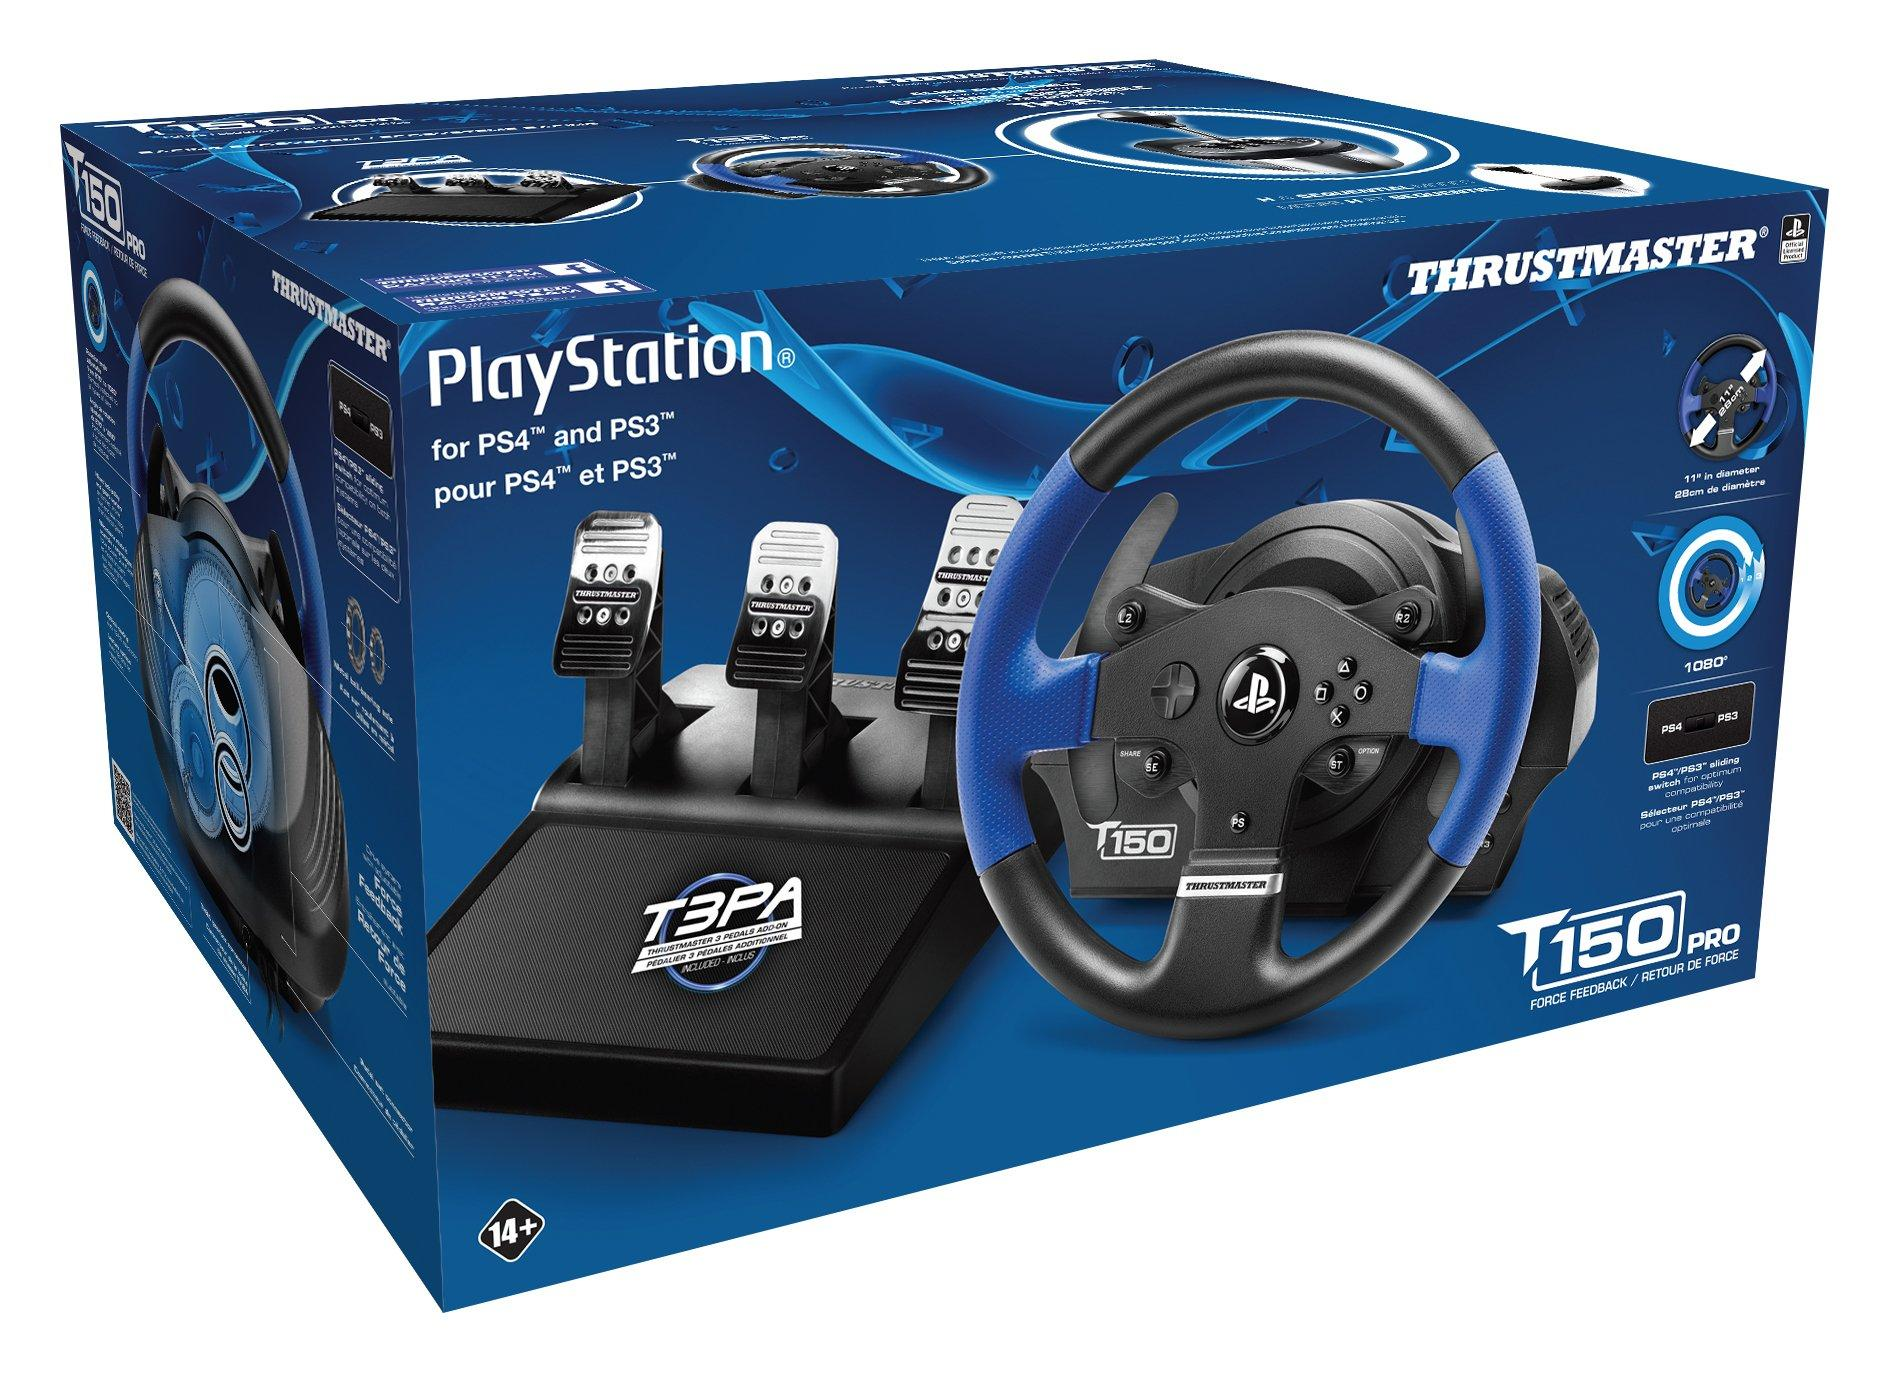 Thrustmaster T150 Pro Limited Edition Racing Wheel - Only at GameStop |  <%Console%> | GameStop